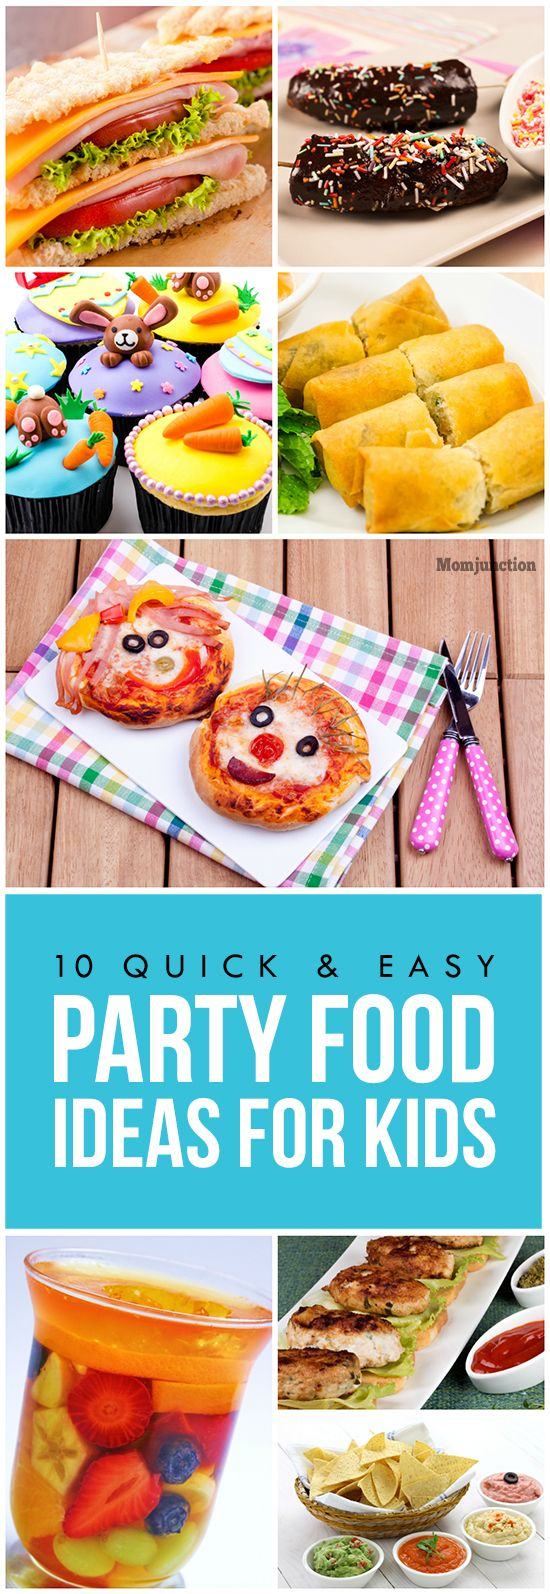 21 Kids Party Food Ideas That Are Yummy To The Core